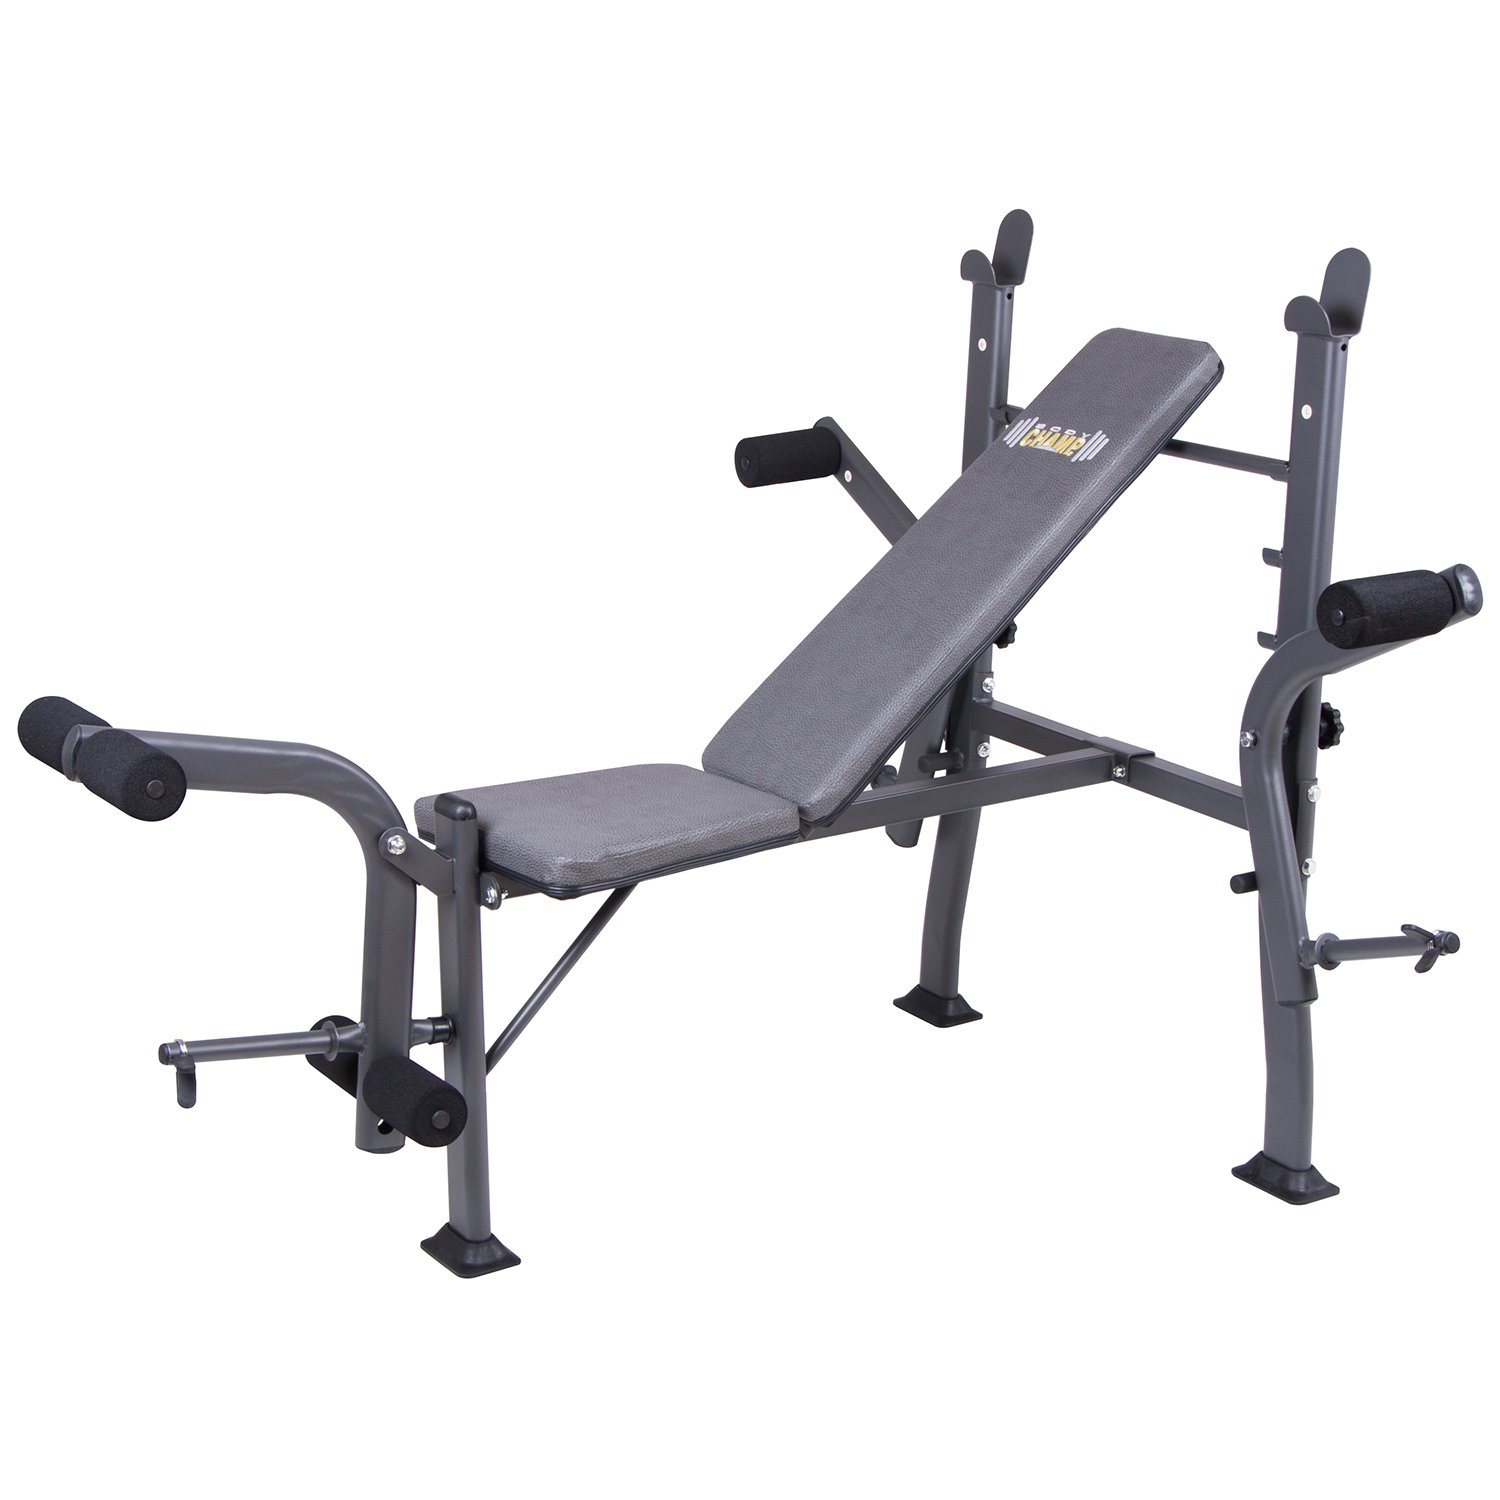 set rigs bench pair all weight sets a pu barbells config with lifting shop racks gym